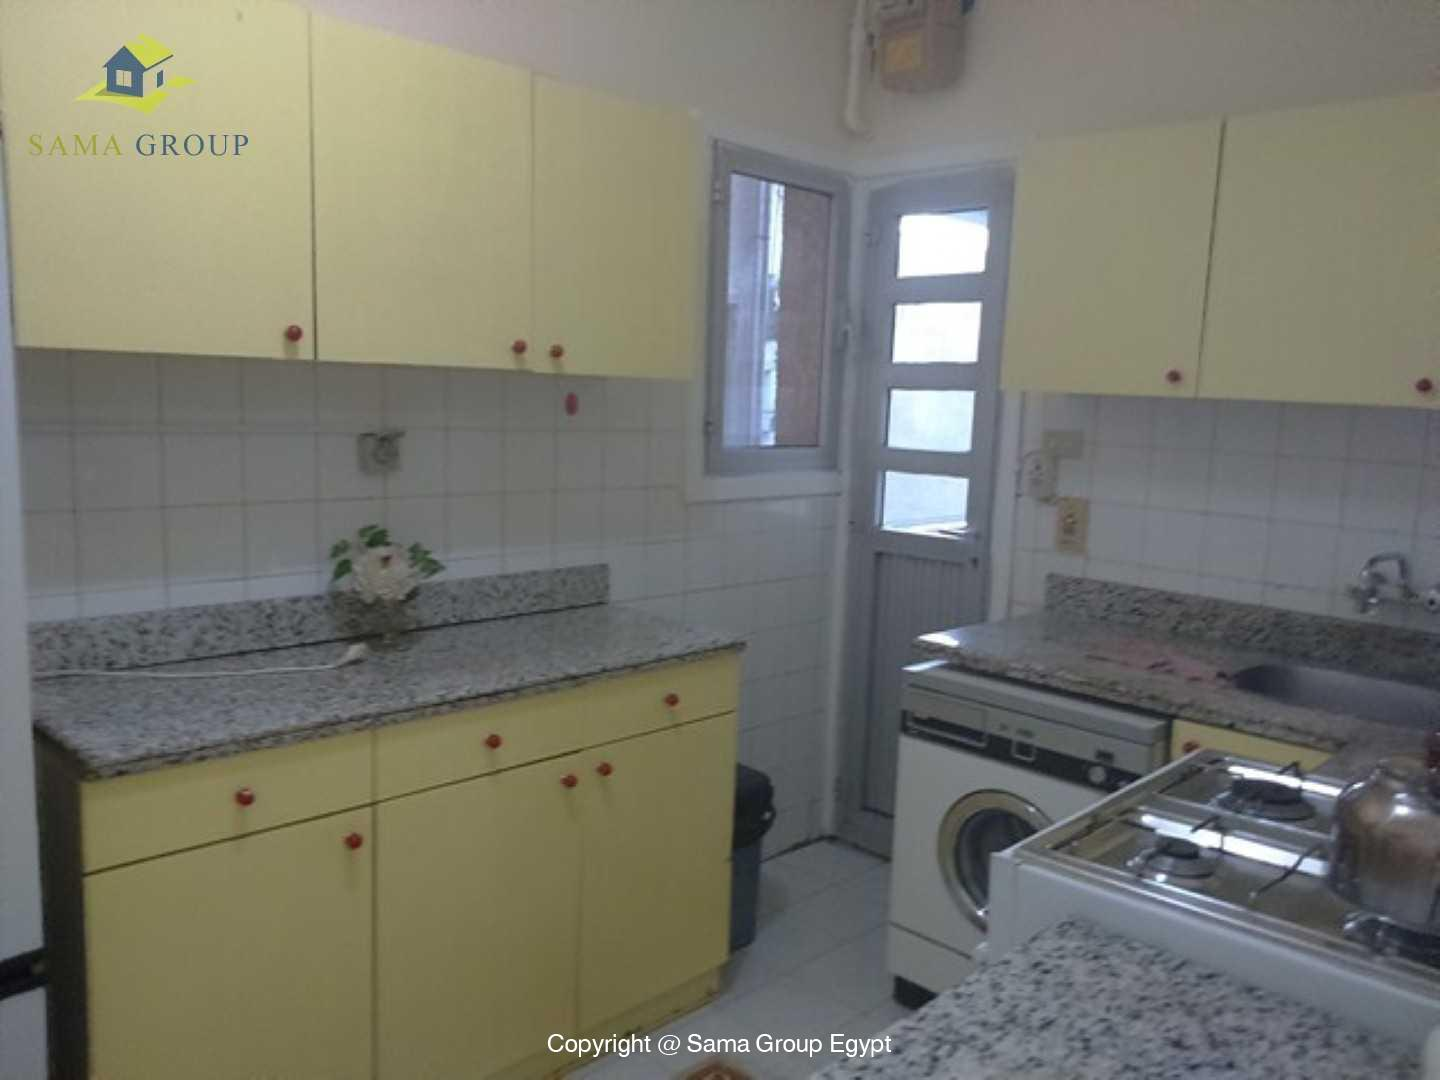 Furnished Apartment With Open View For Rent In Maadi,Furnished,Apartment NO #8